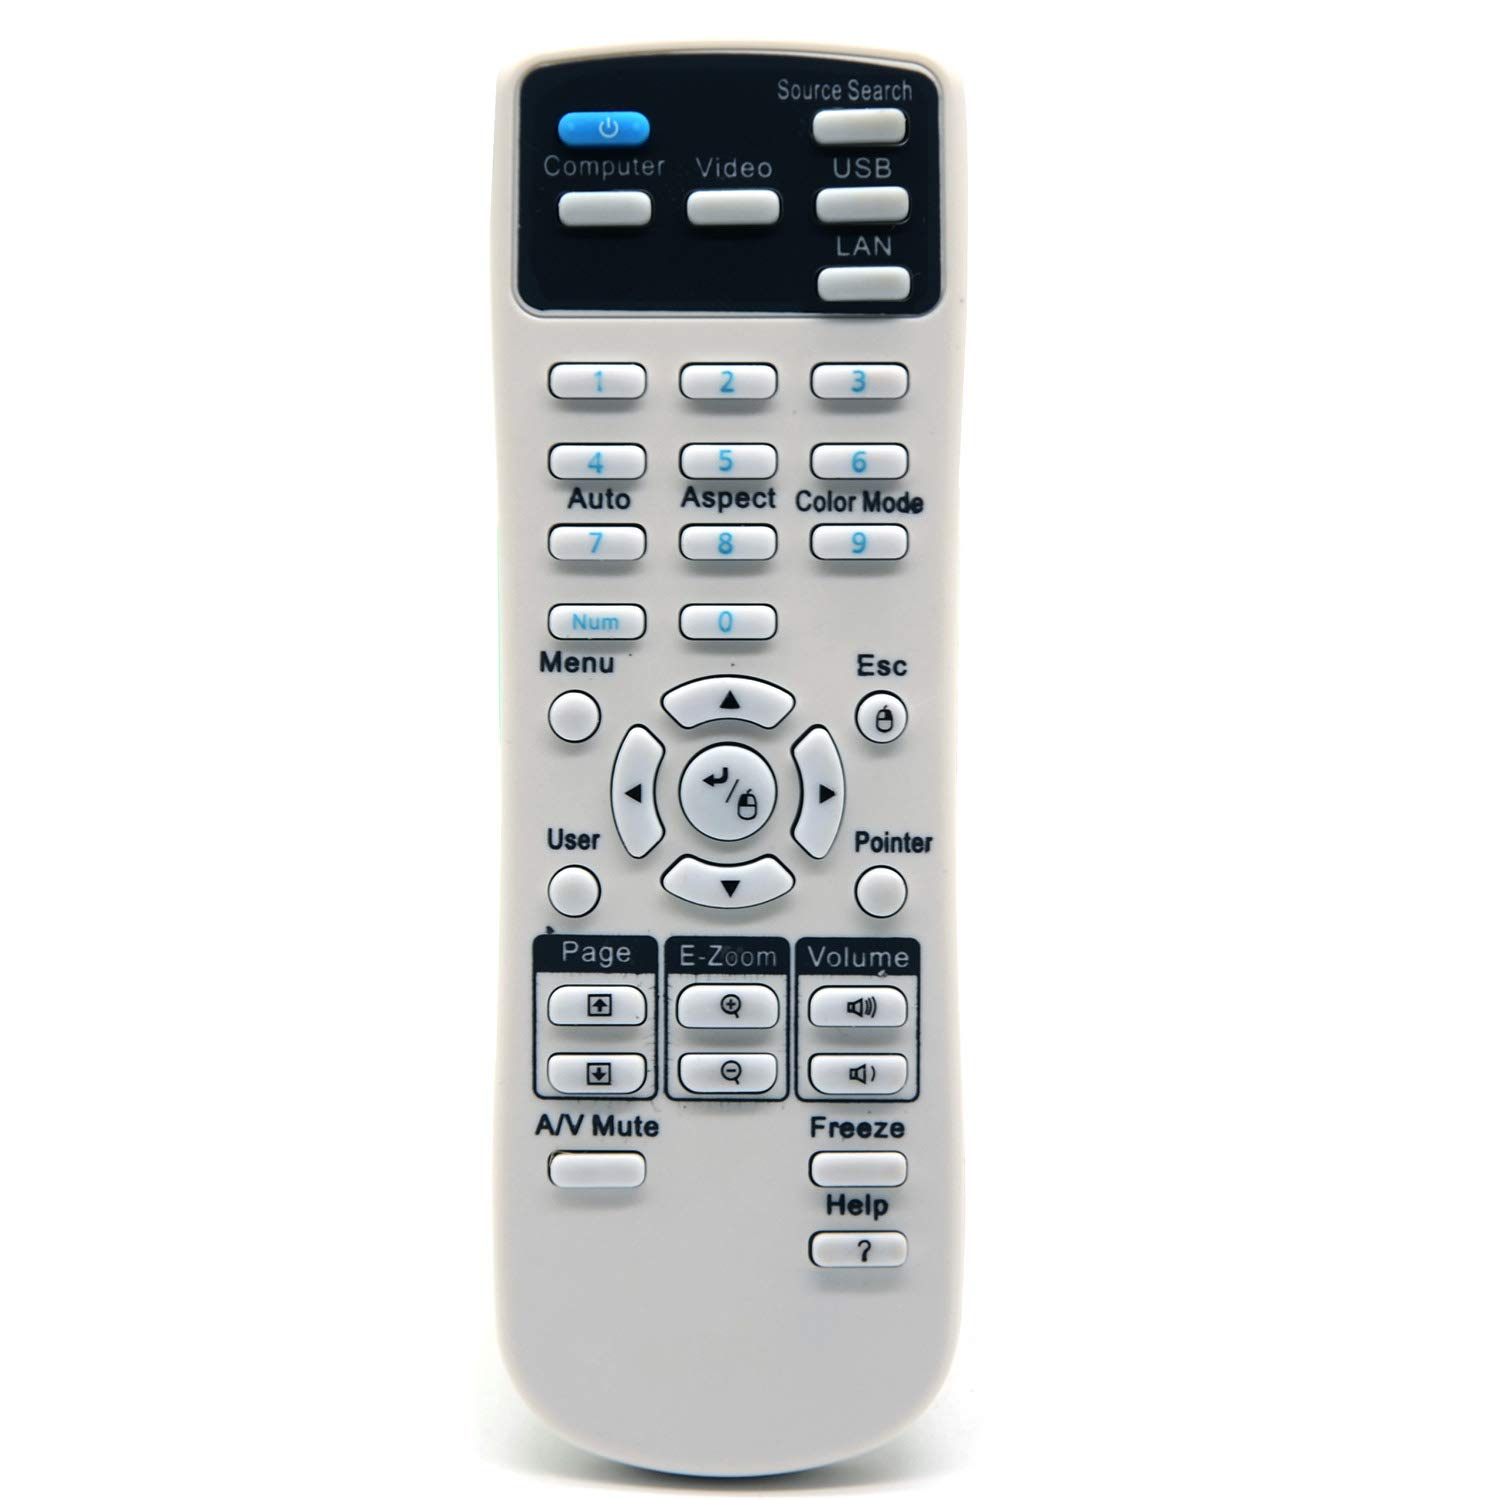 ESolid Replacement Remote Control for Epson 1648806 EX3240 EX5240 EX5250 PRO EX7240 PRO EX9200 PRO VS240 VS340 VS345 PowerLite 1224/1264 /1284 /Home Cinema 1040/640 / 740HD / S31+ /U32+ /W04+ /W32 by ESolid